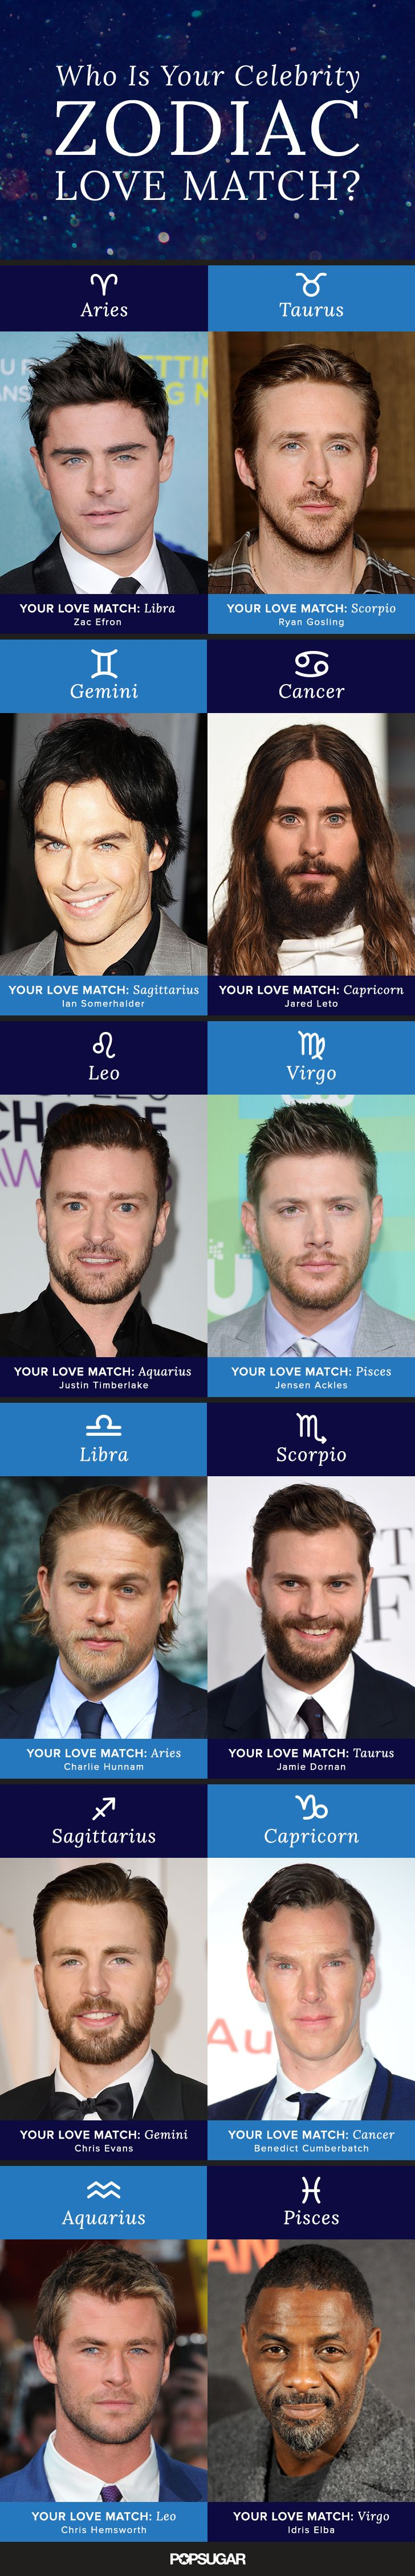 March 1 Horoscope | Famous Birthdays